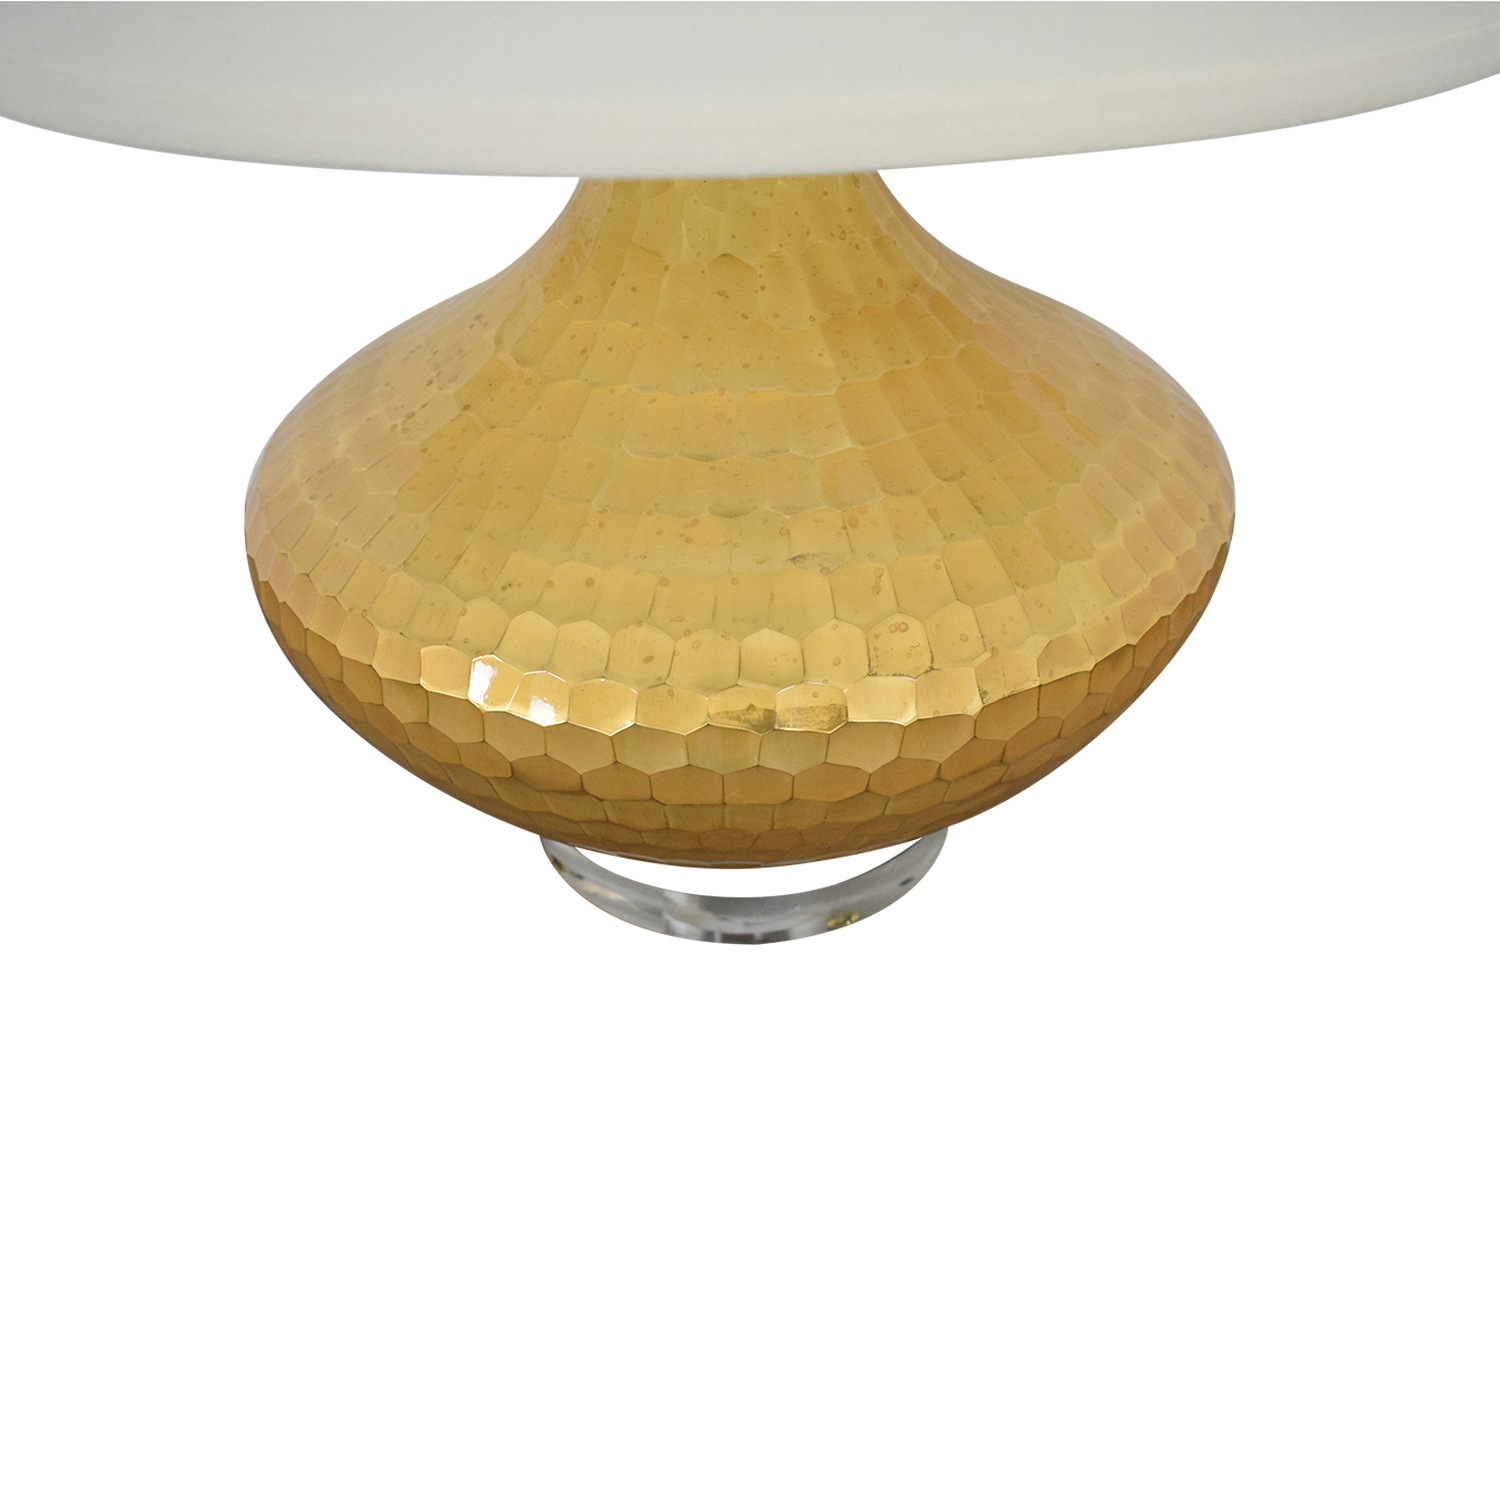 Ethan Allen Ethan Allen Hammered Lamp second hand